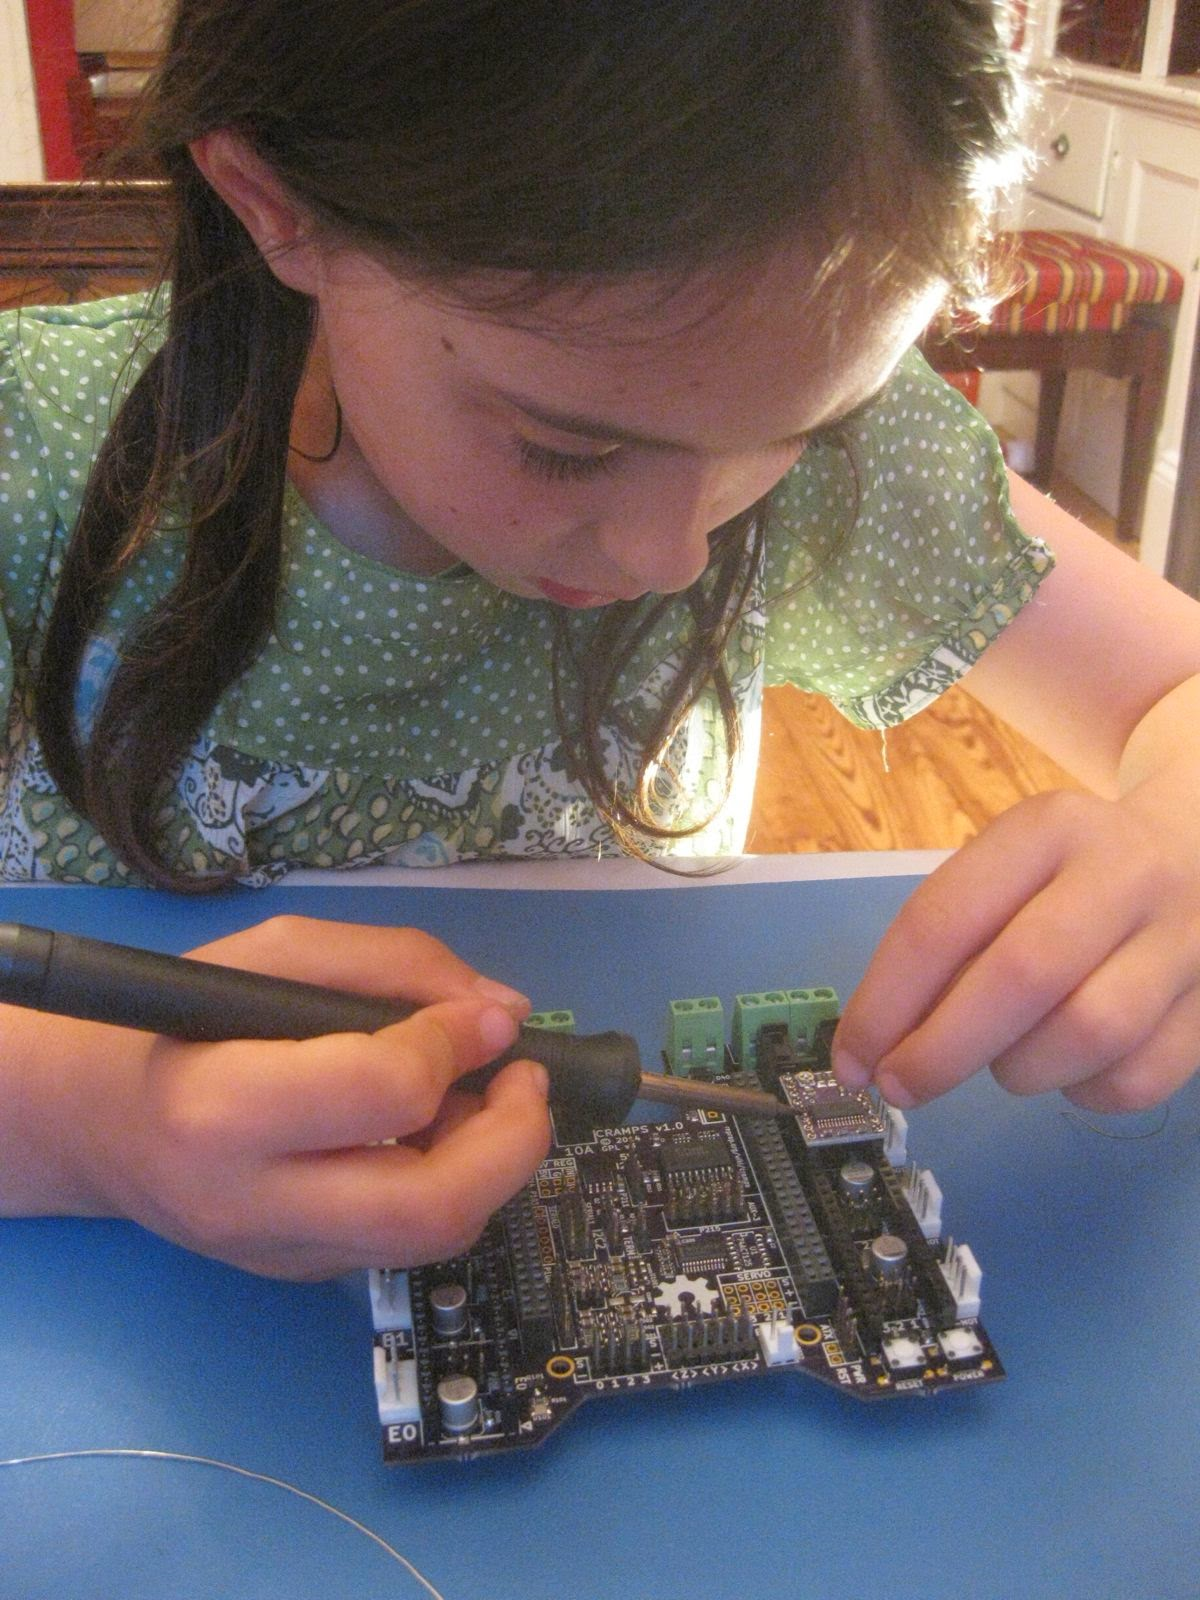 Violet soldered the header pins into the Pololu driver daughterboards.